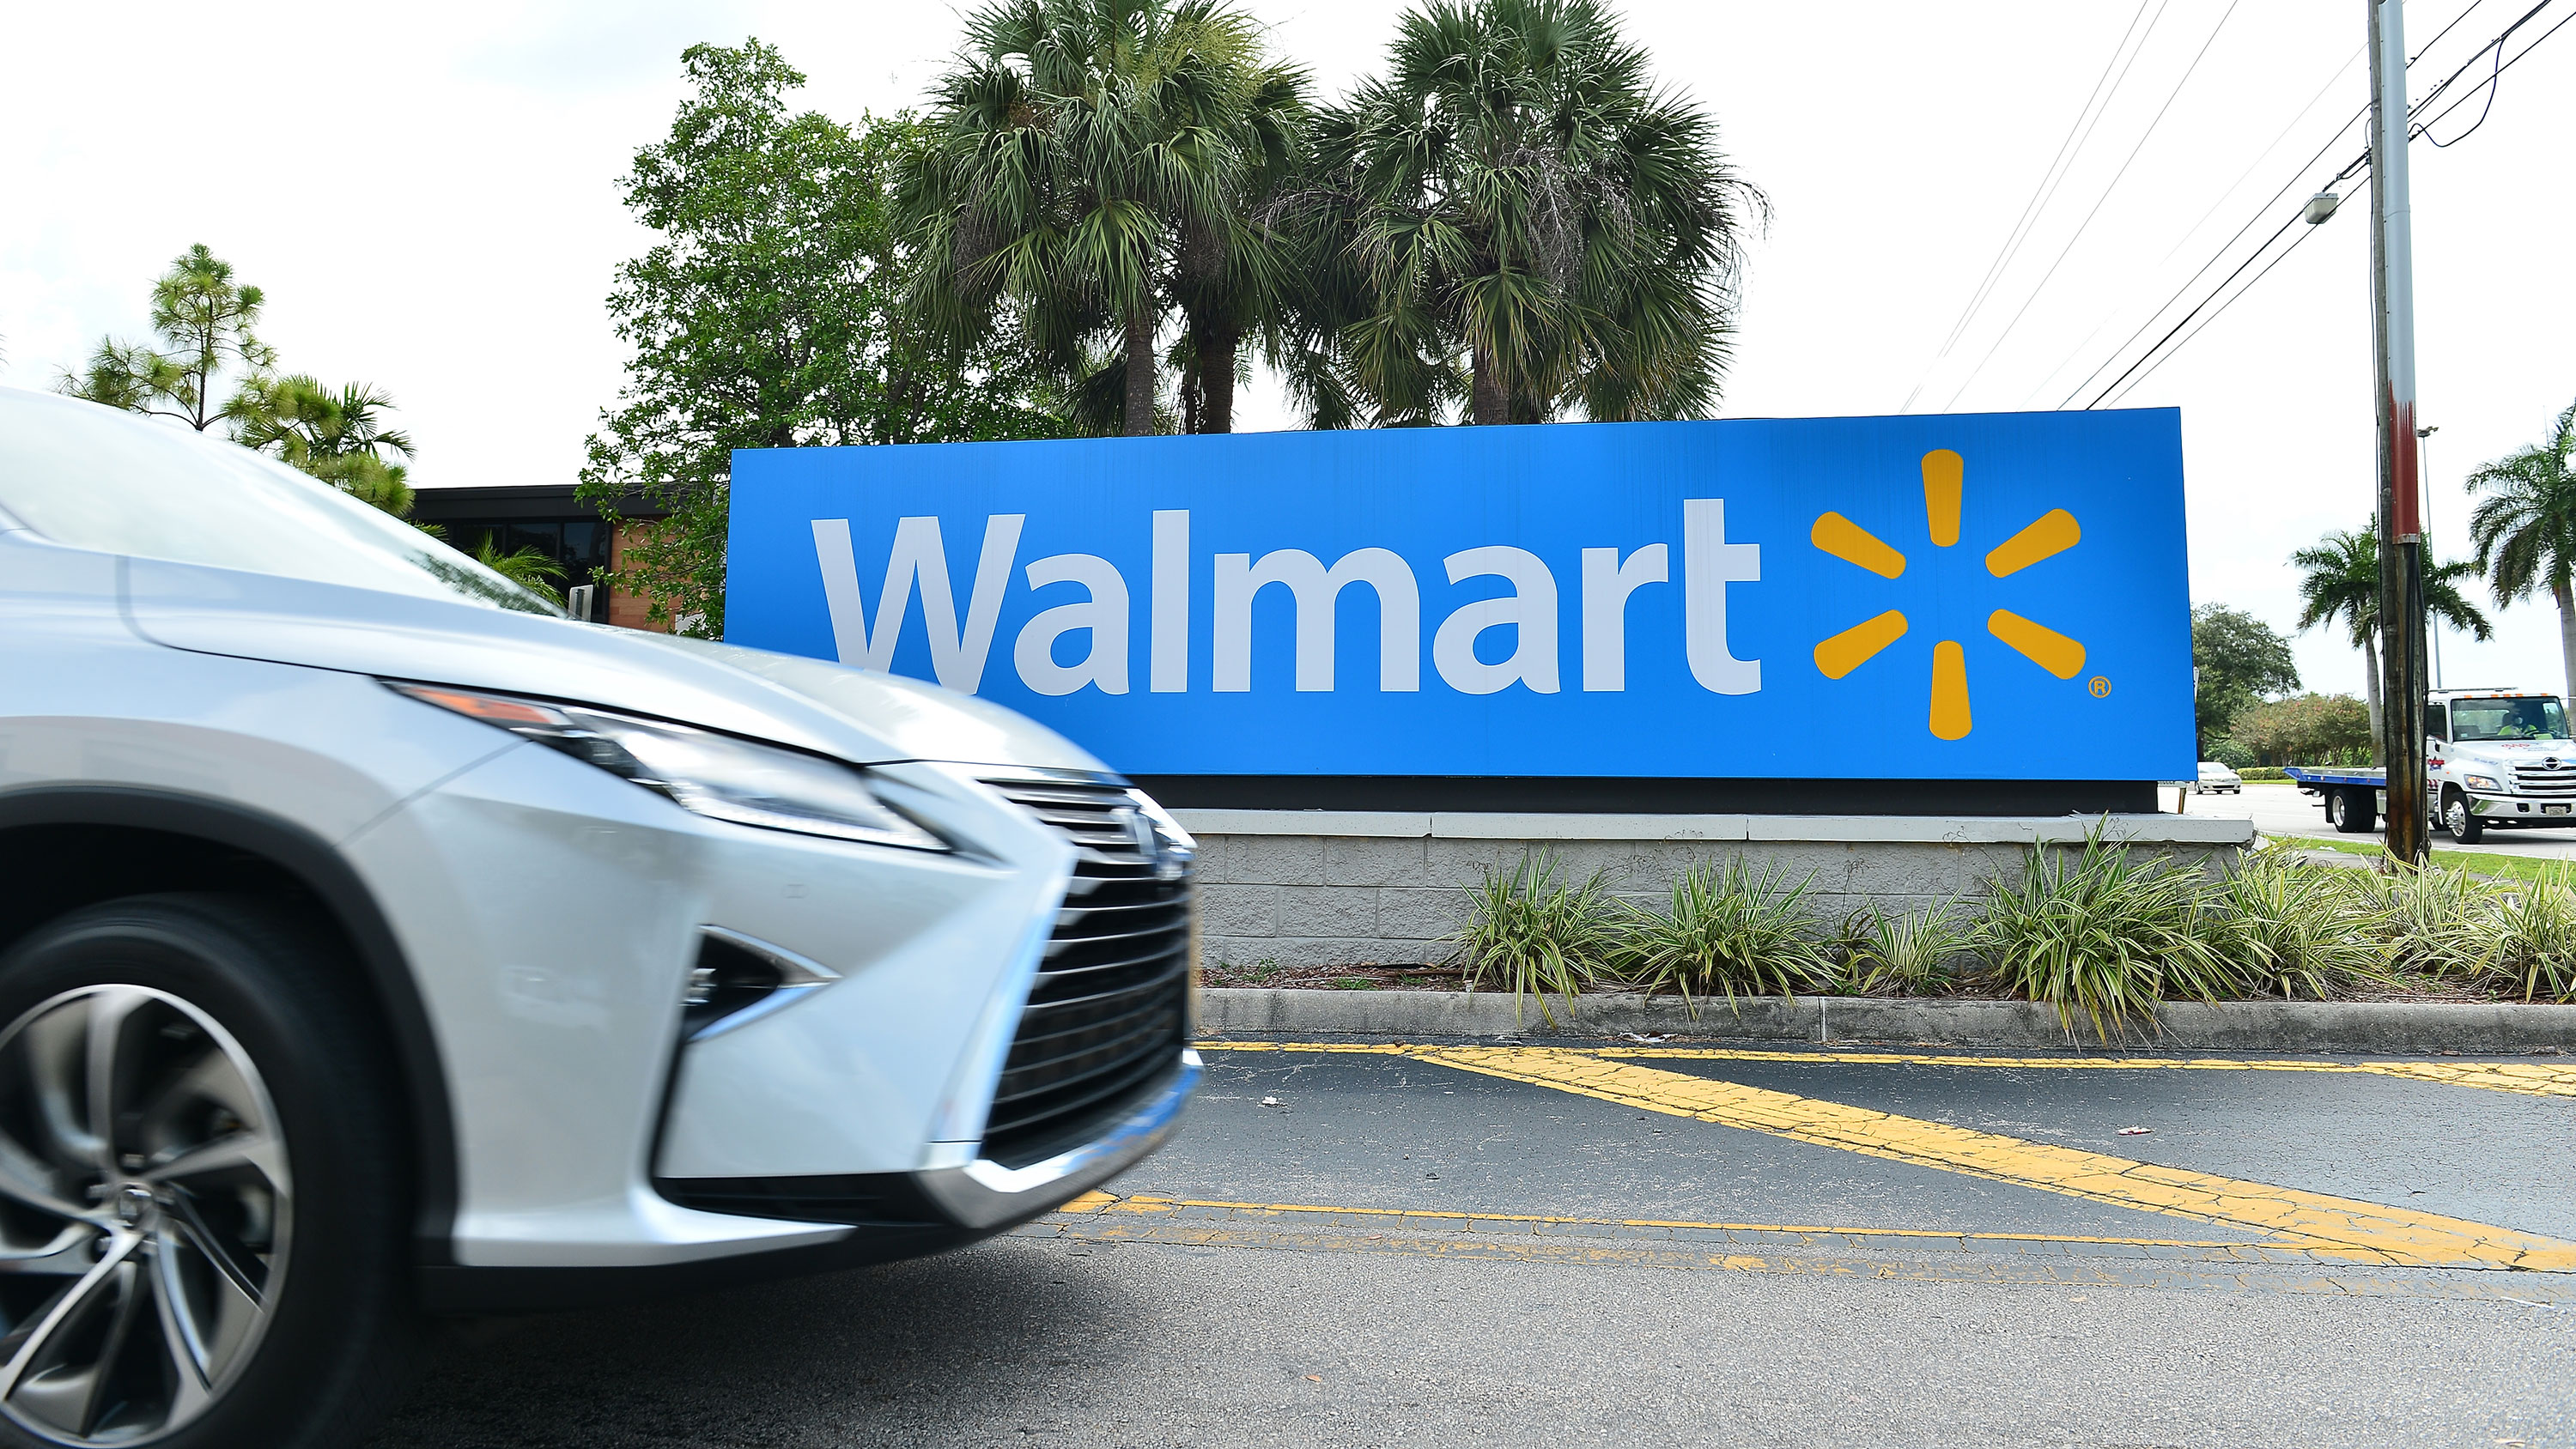 Starting this weekend, Walmart is converting its parking lots into free drive-in theaters